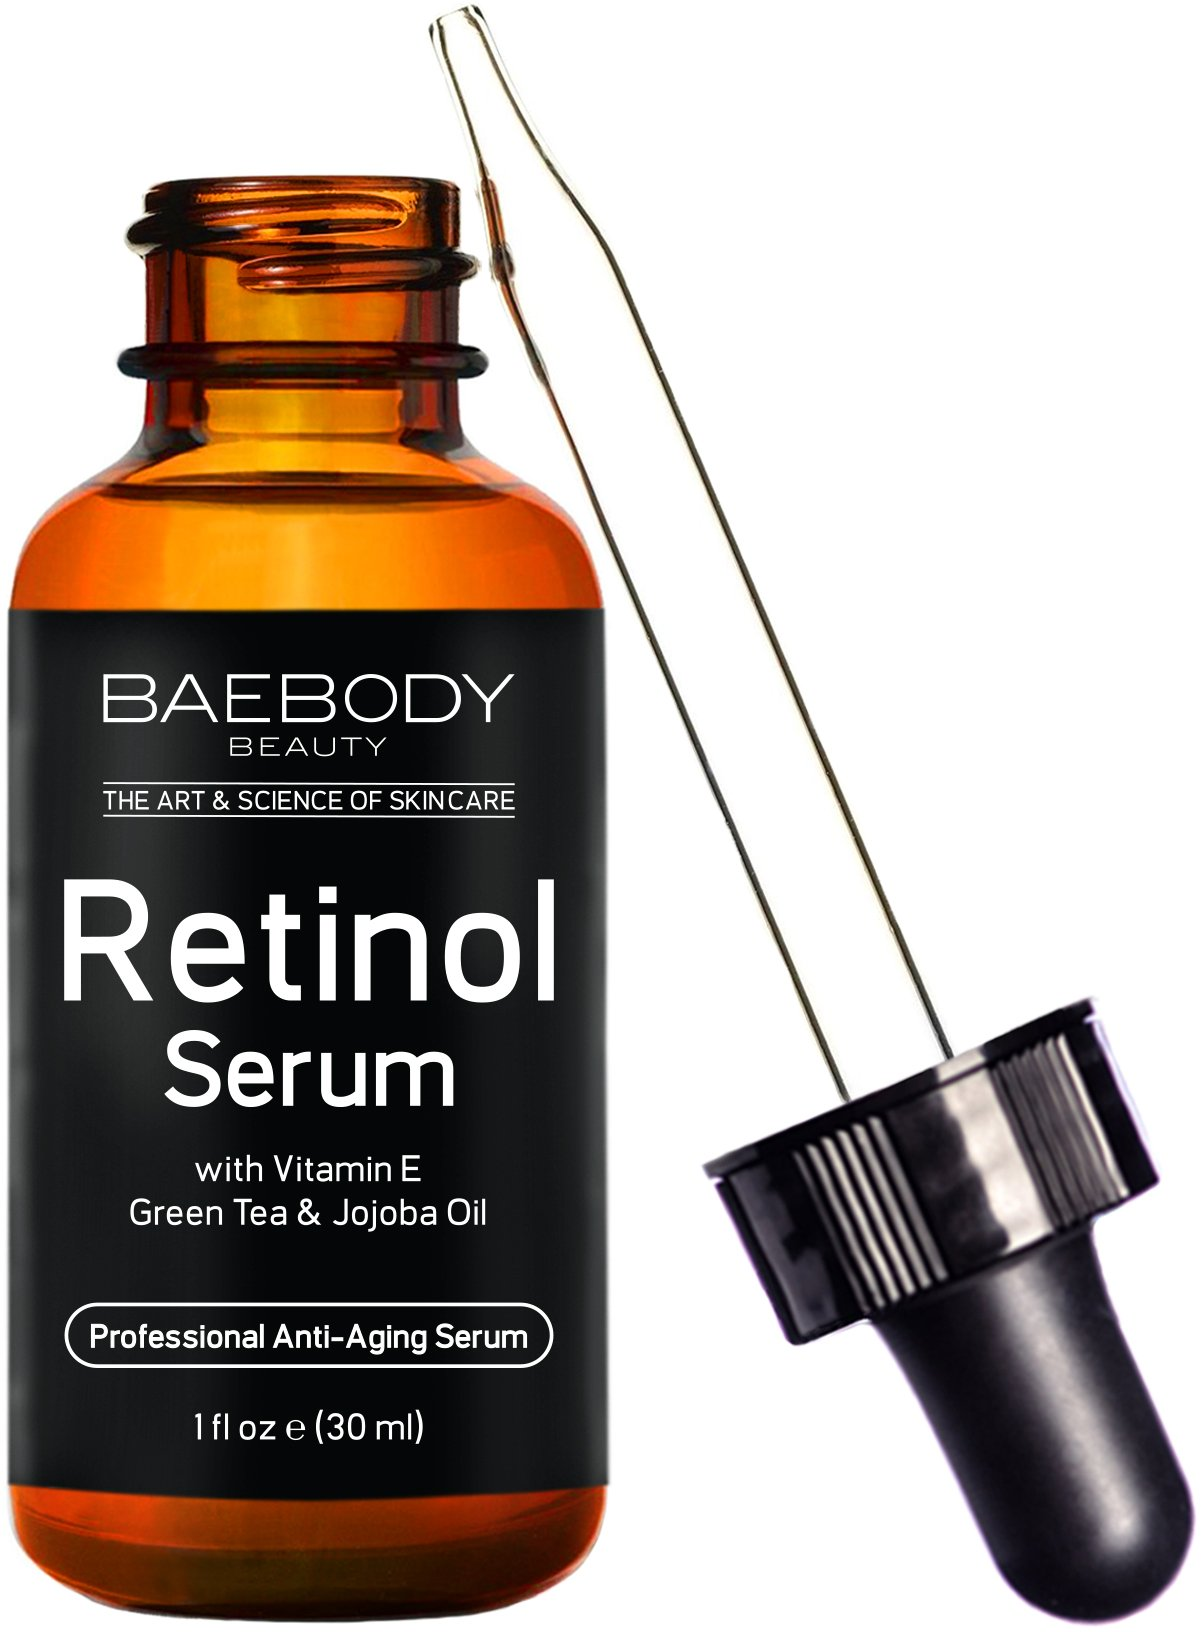 Baebody Retinol Serum for Face, Professional Anti-Aging Topical Facial Serum, Anti-Wrinkle & Reduce Fine Lines, Clinical Strength Organic Ingredients w Vitamin E, Hyaluronic Acid, Jojoba Oil 1oz